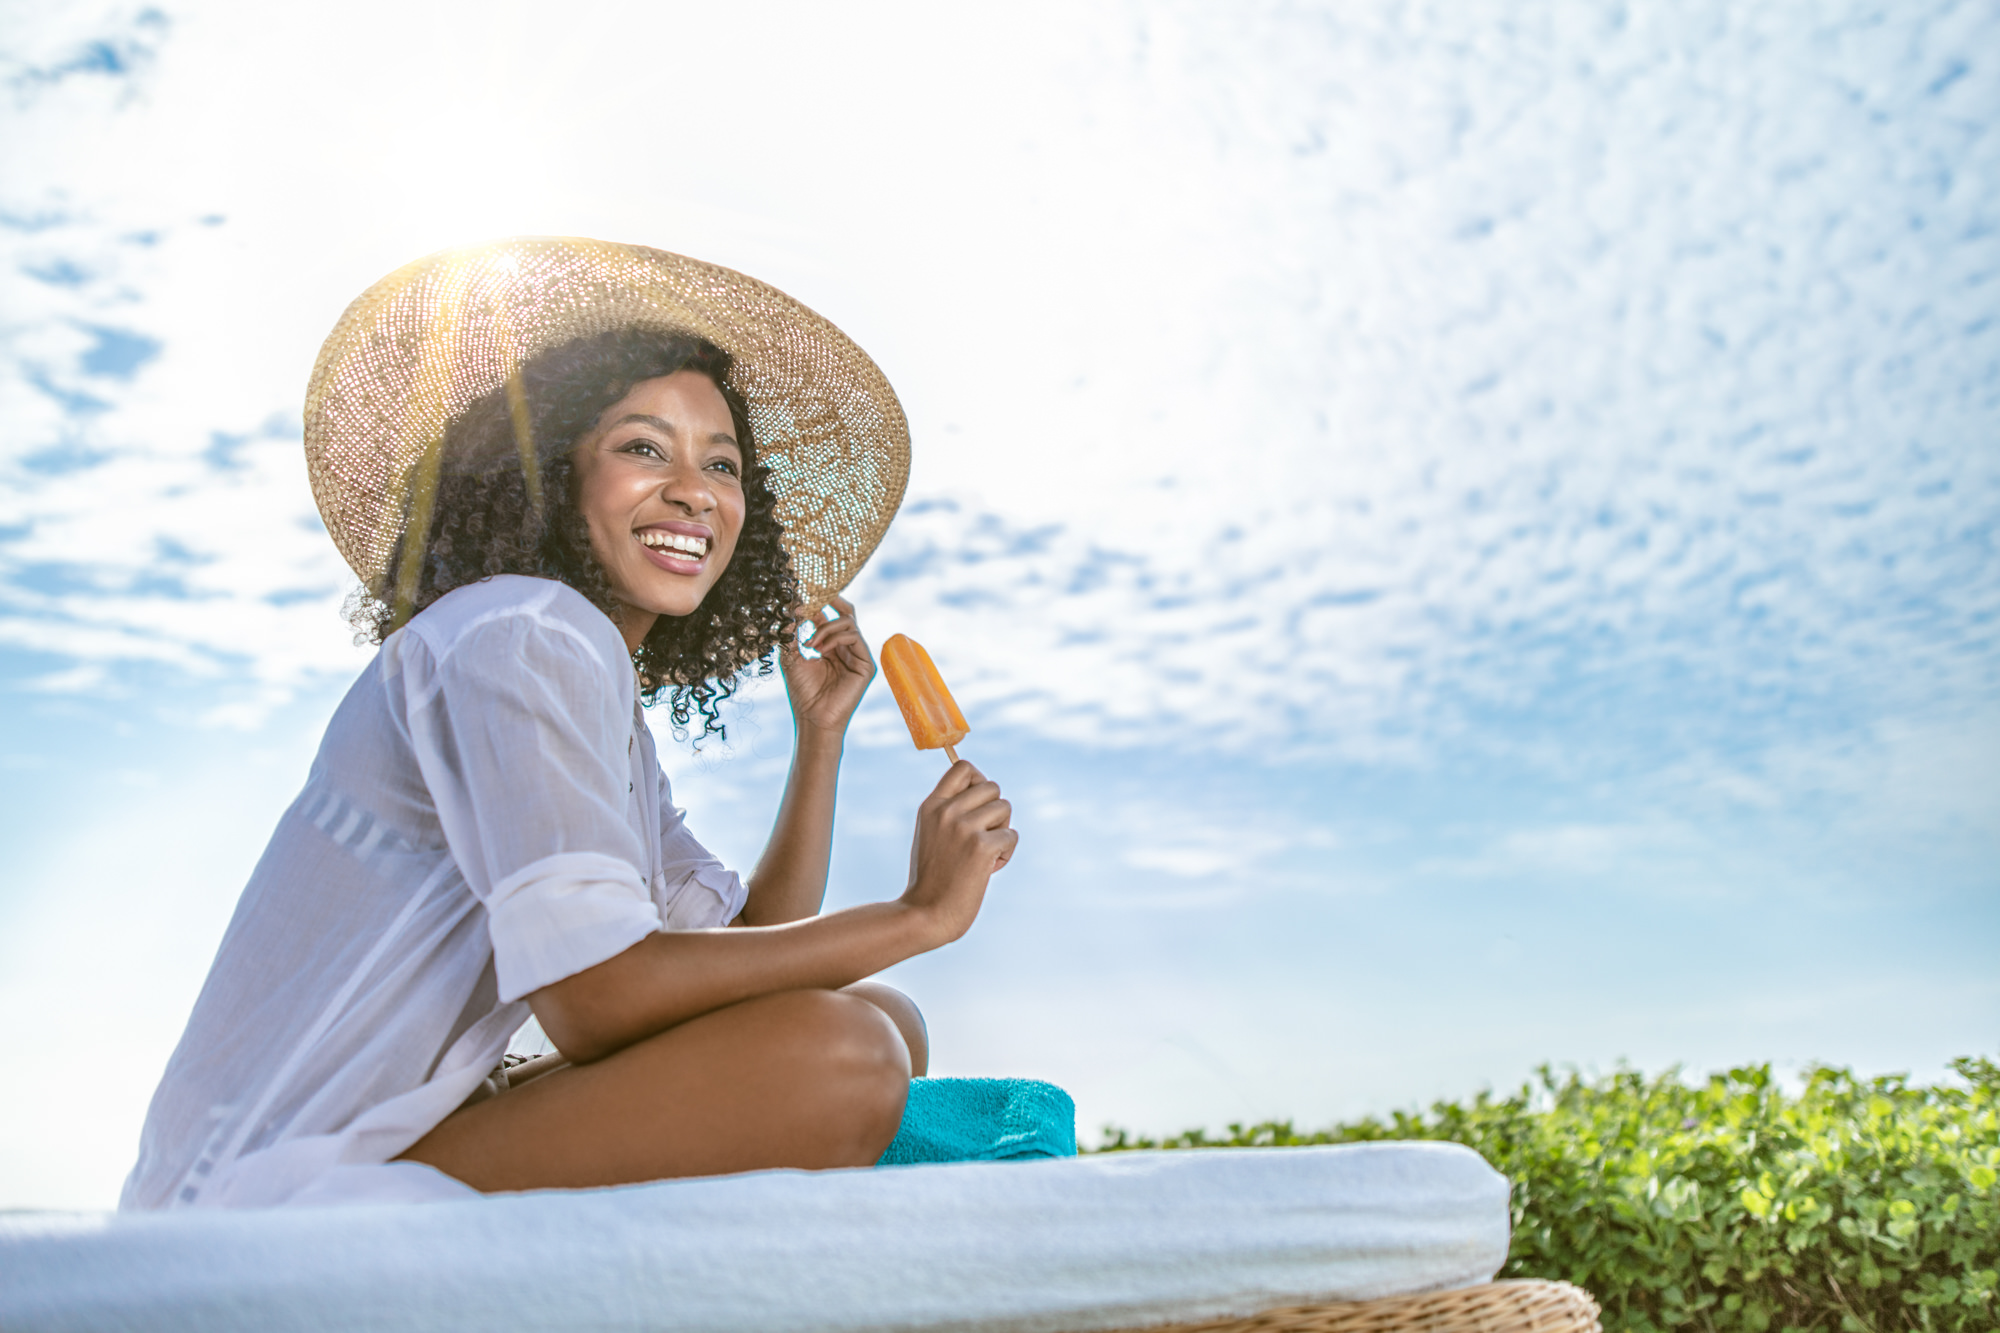 Image of Woman eating an ice cream at the Beverly Hills Hotel in uMhlanga Rocks, Durban for  Tsogo Sun's Image Library & Content Library by Michelle Wastie Photography